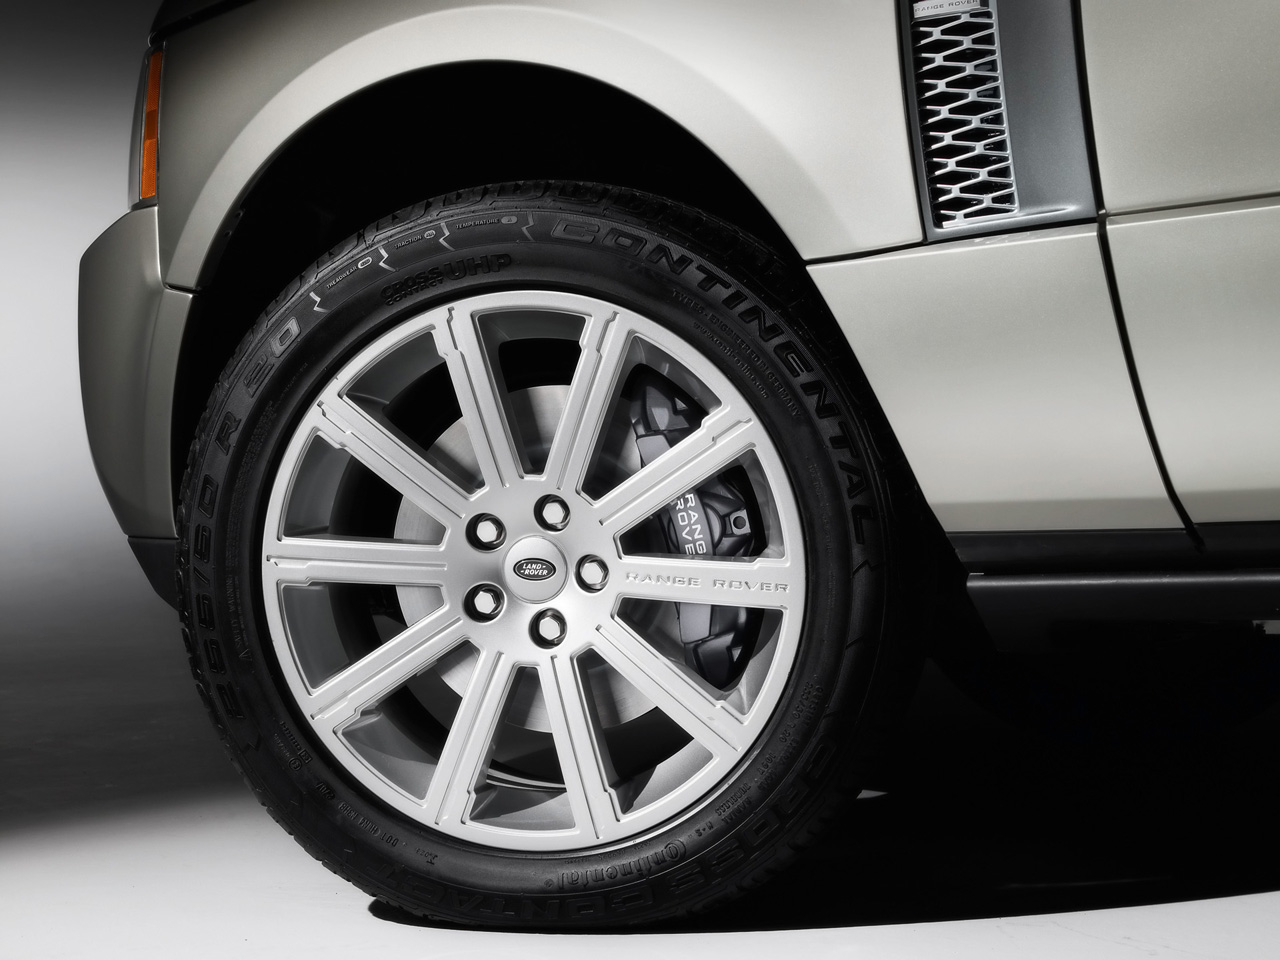 Land Rover Range Rover wheels #2